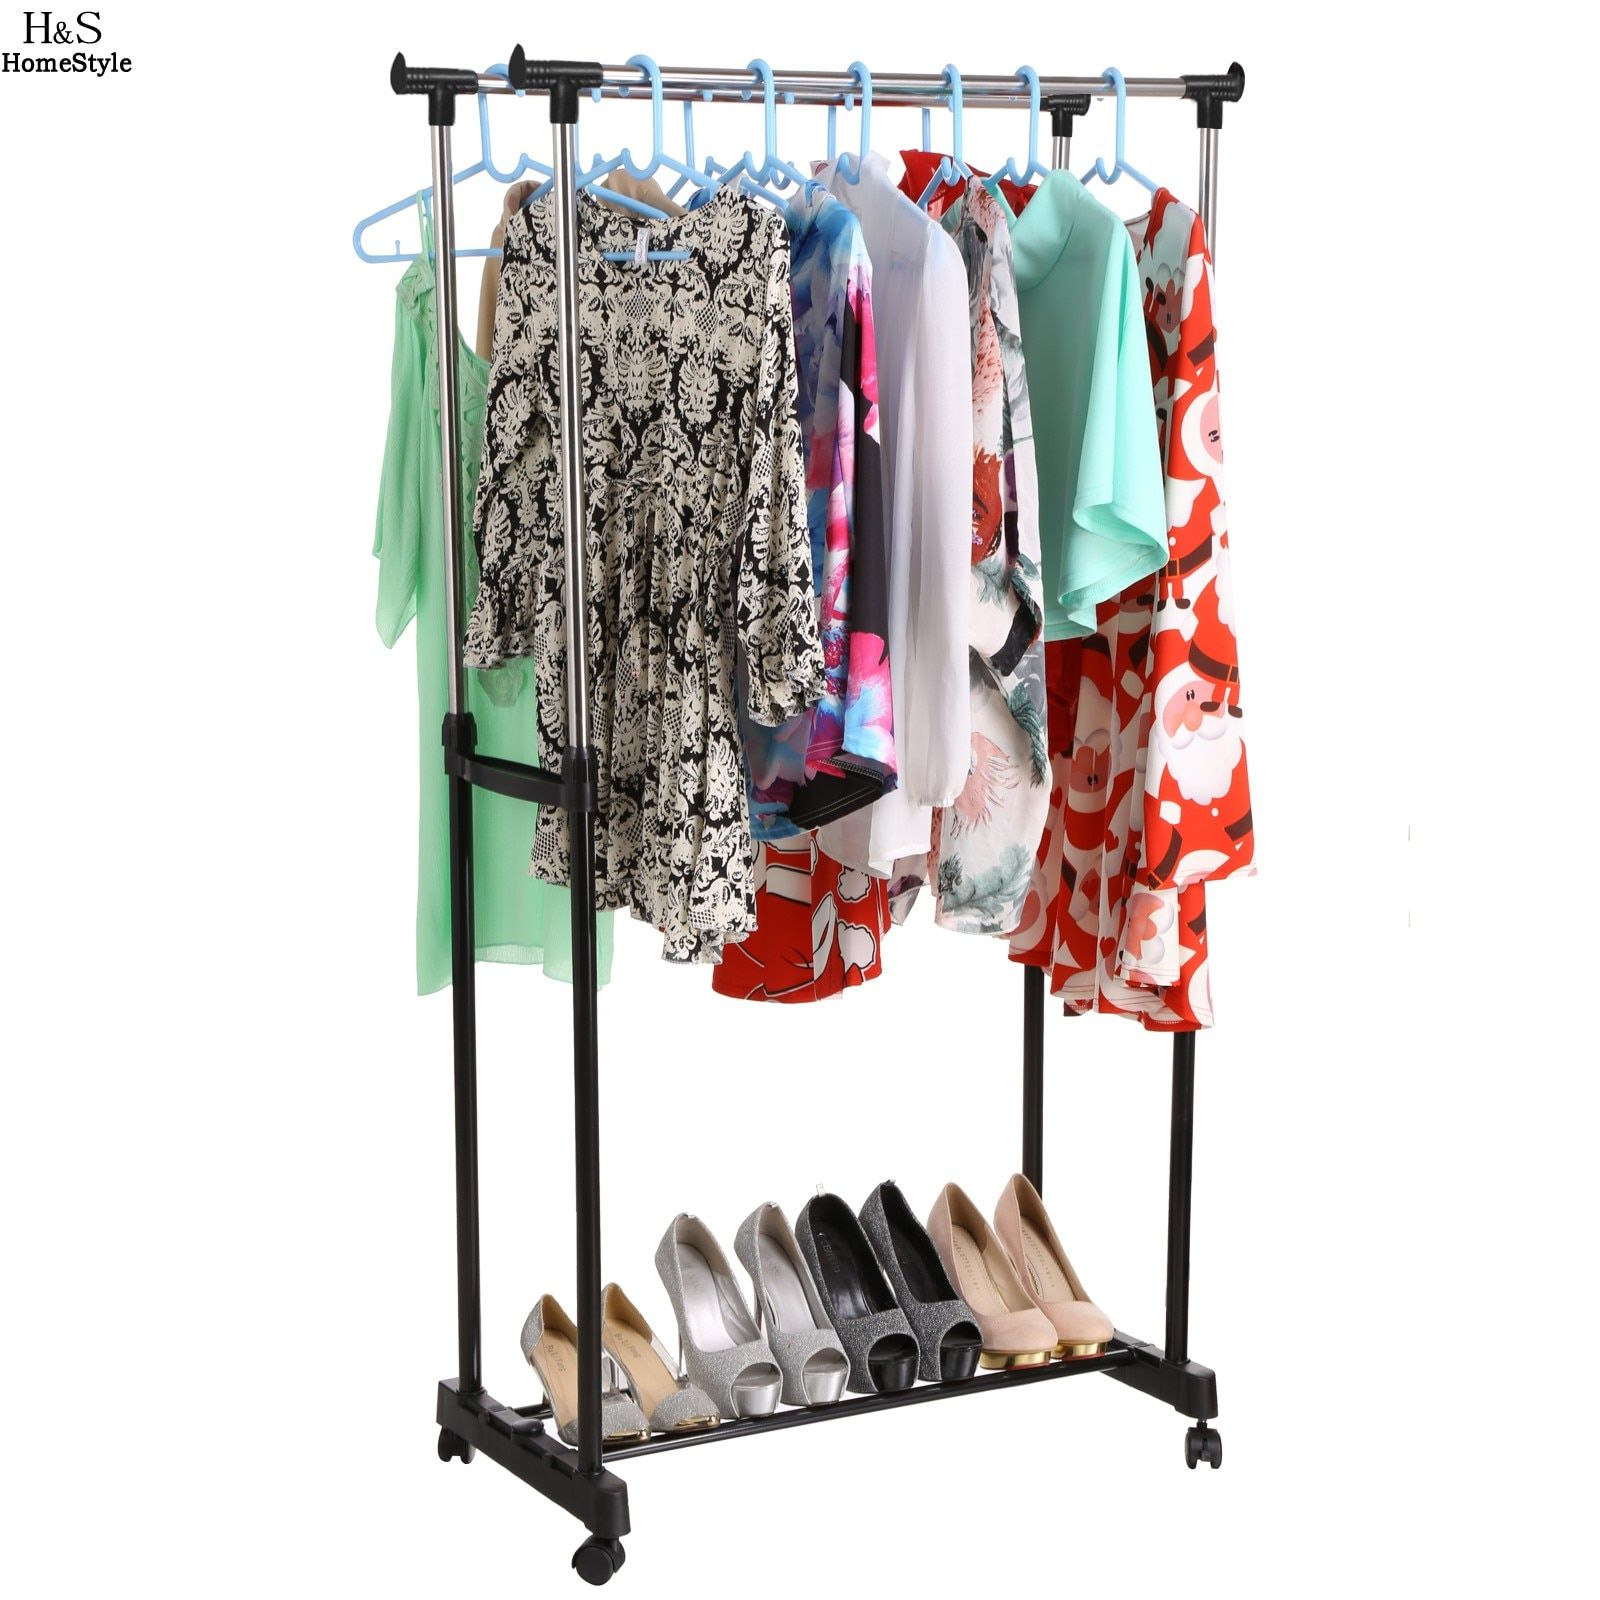 Universe Of Goods Buy Portable Adjustable Clothing Racks Double Clothes Garment Drying Hanging Rack Portable Clothes Rack Clothes Drying Racks Clothing Rack